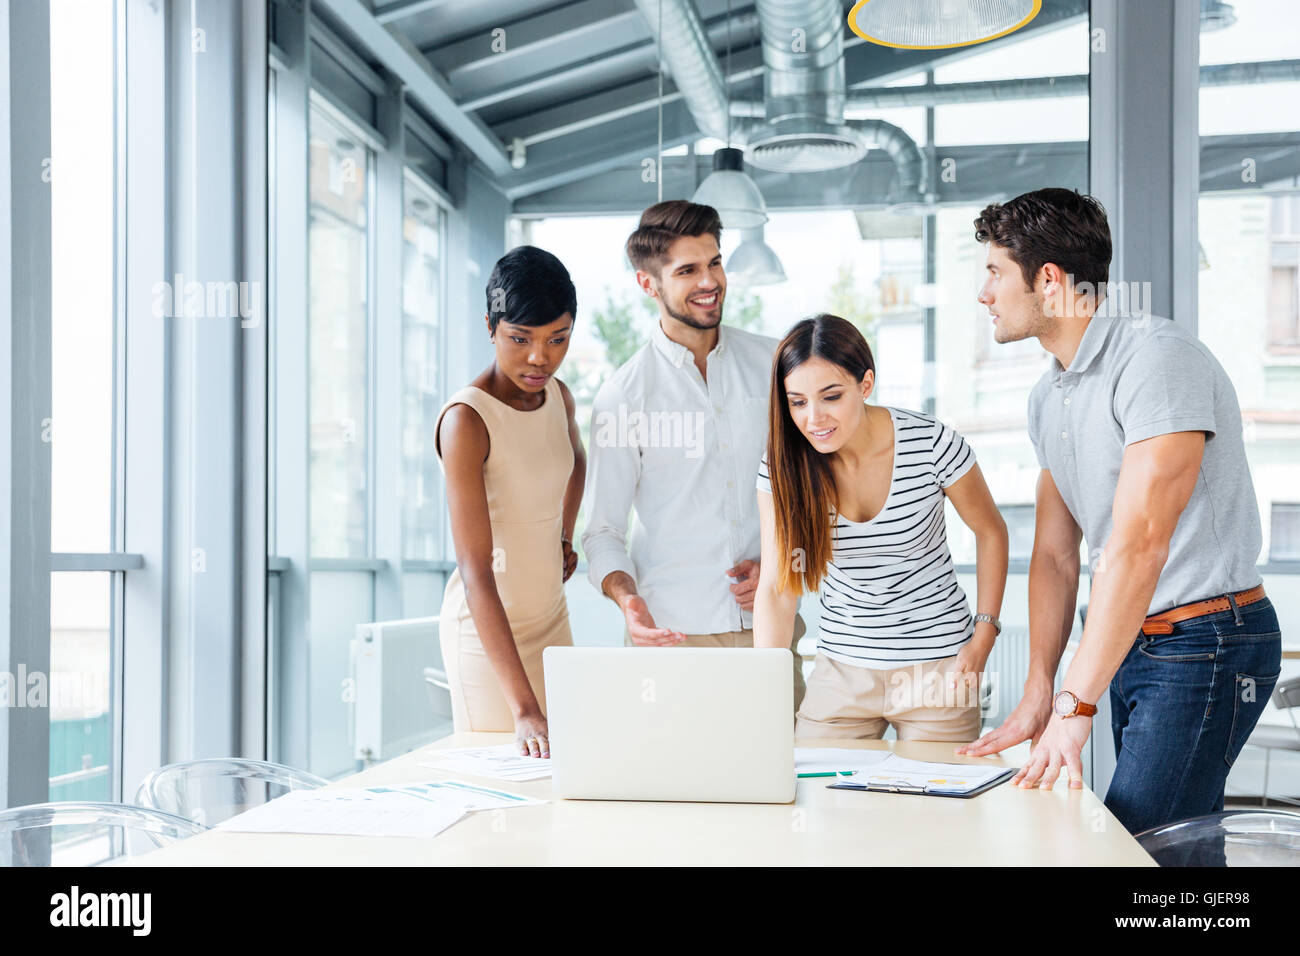 Multiethnic group of happy young business people standing and creating presentation with laptop in office - Stock Image